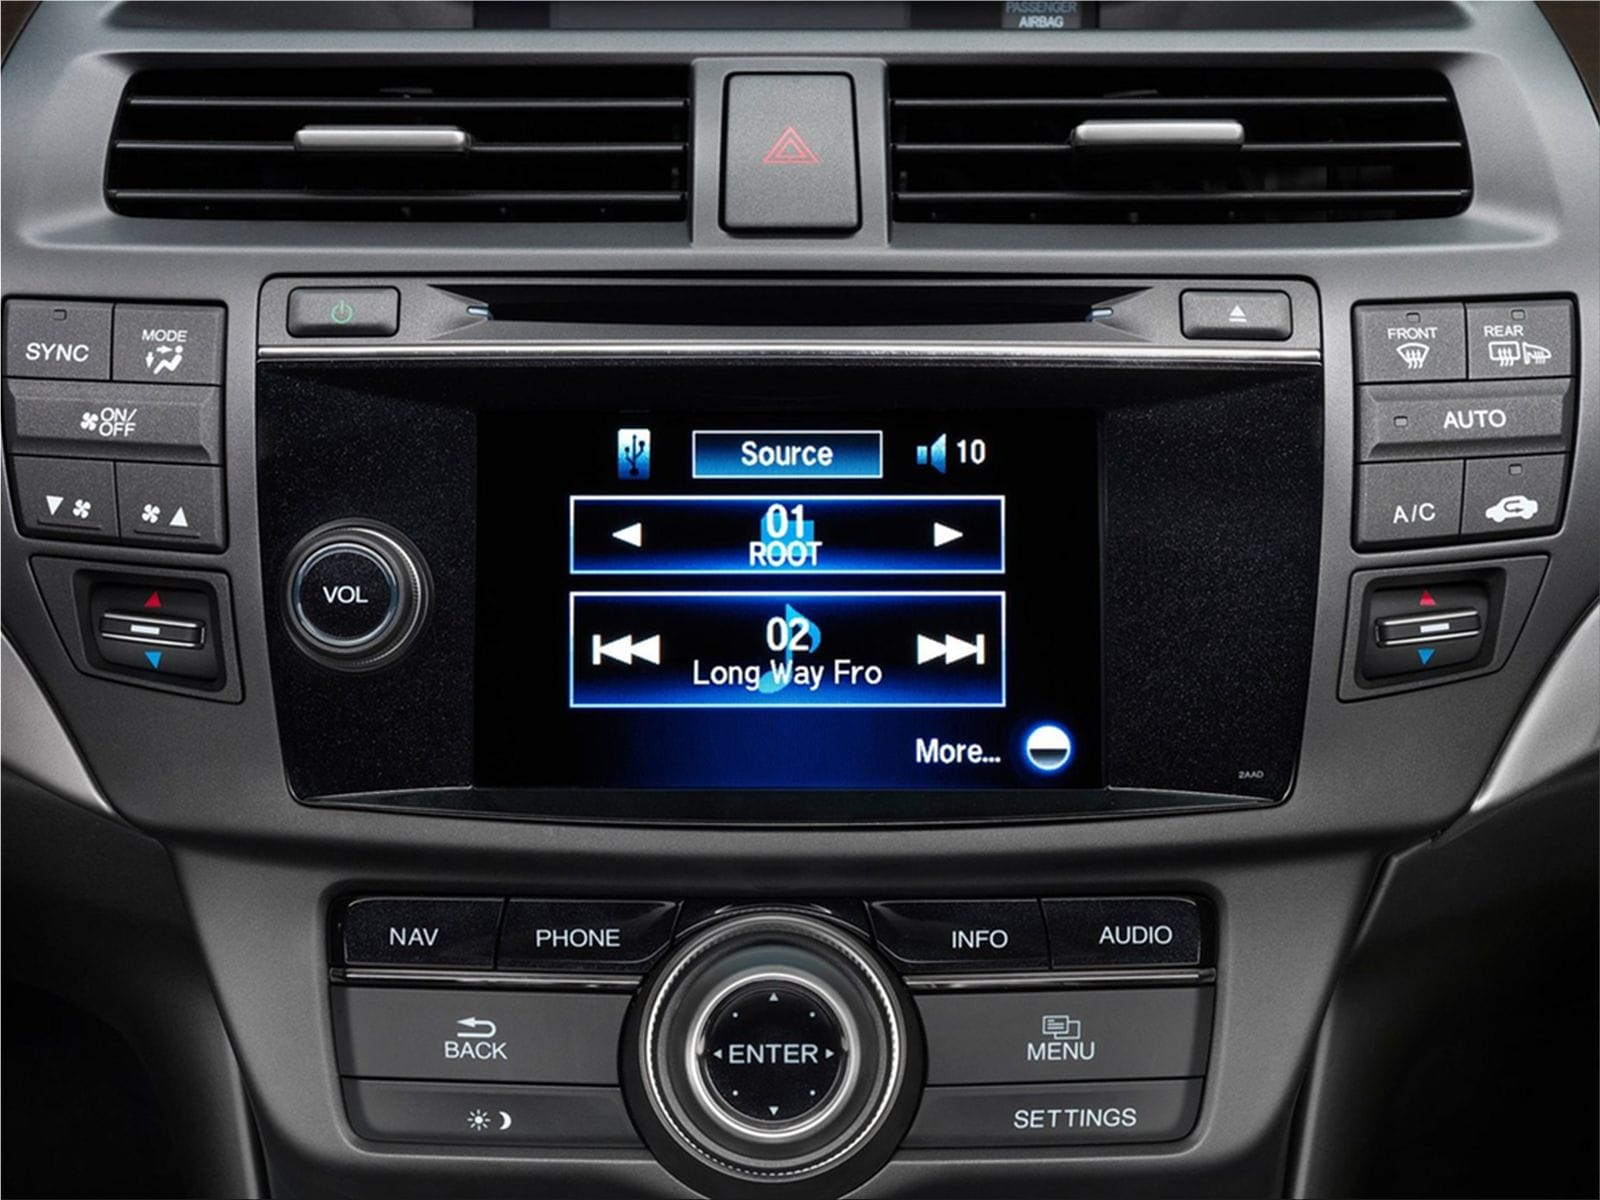 drive crosstour crossover harness diagram the interior first accord review of honda latest database view lg wiring l ex